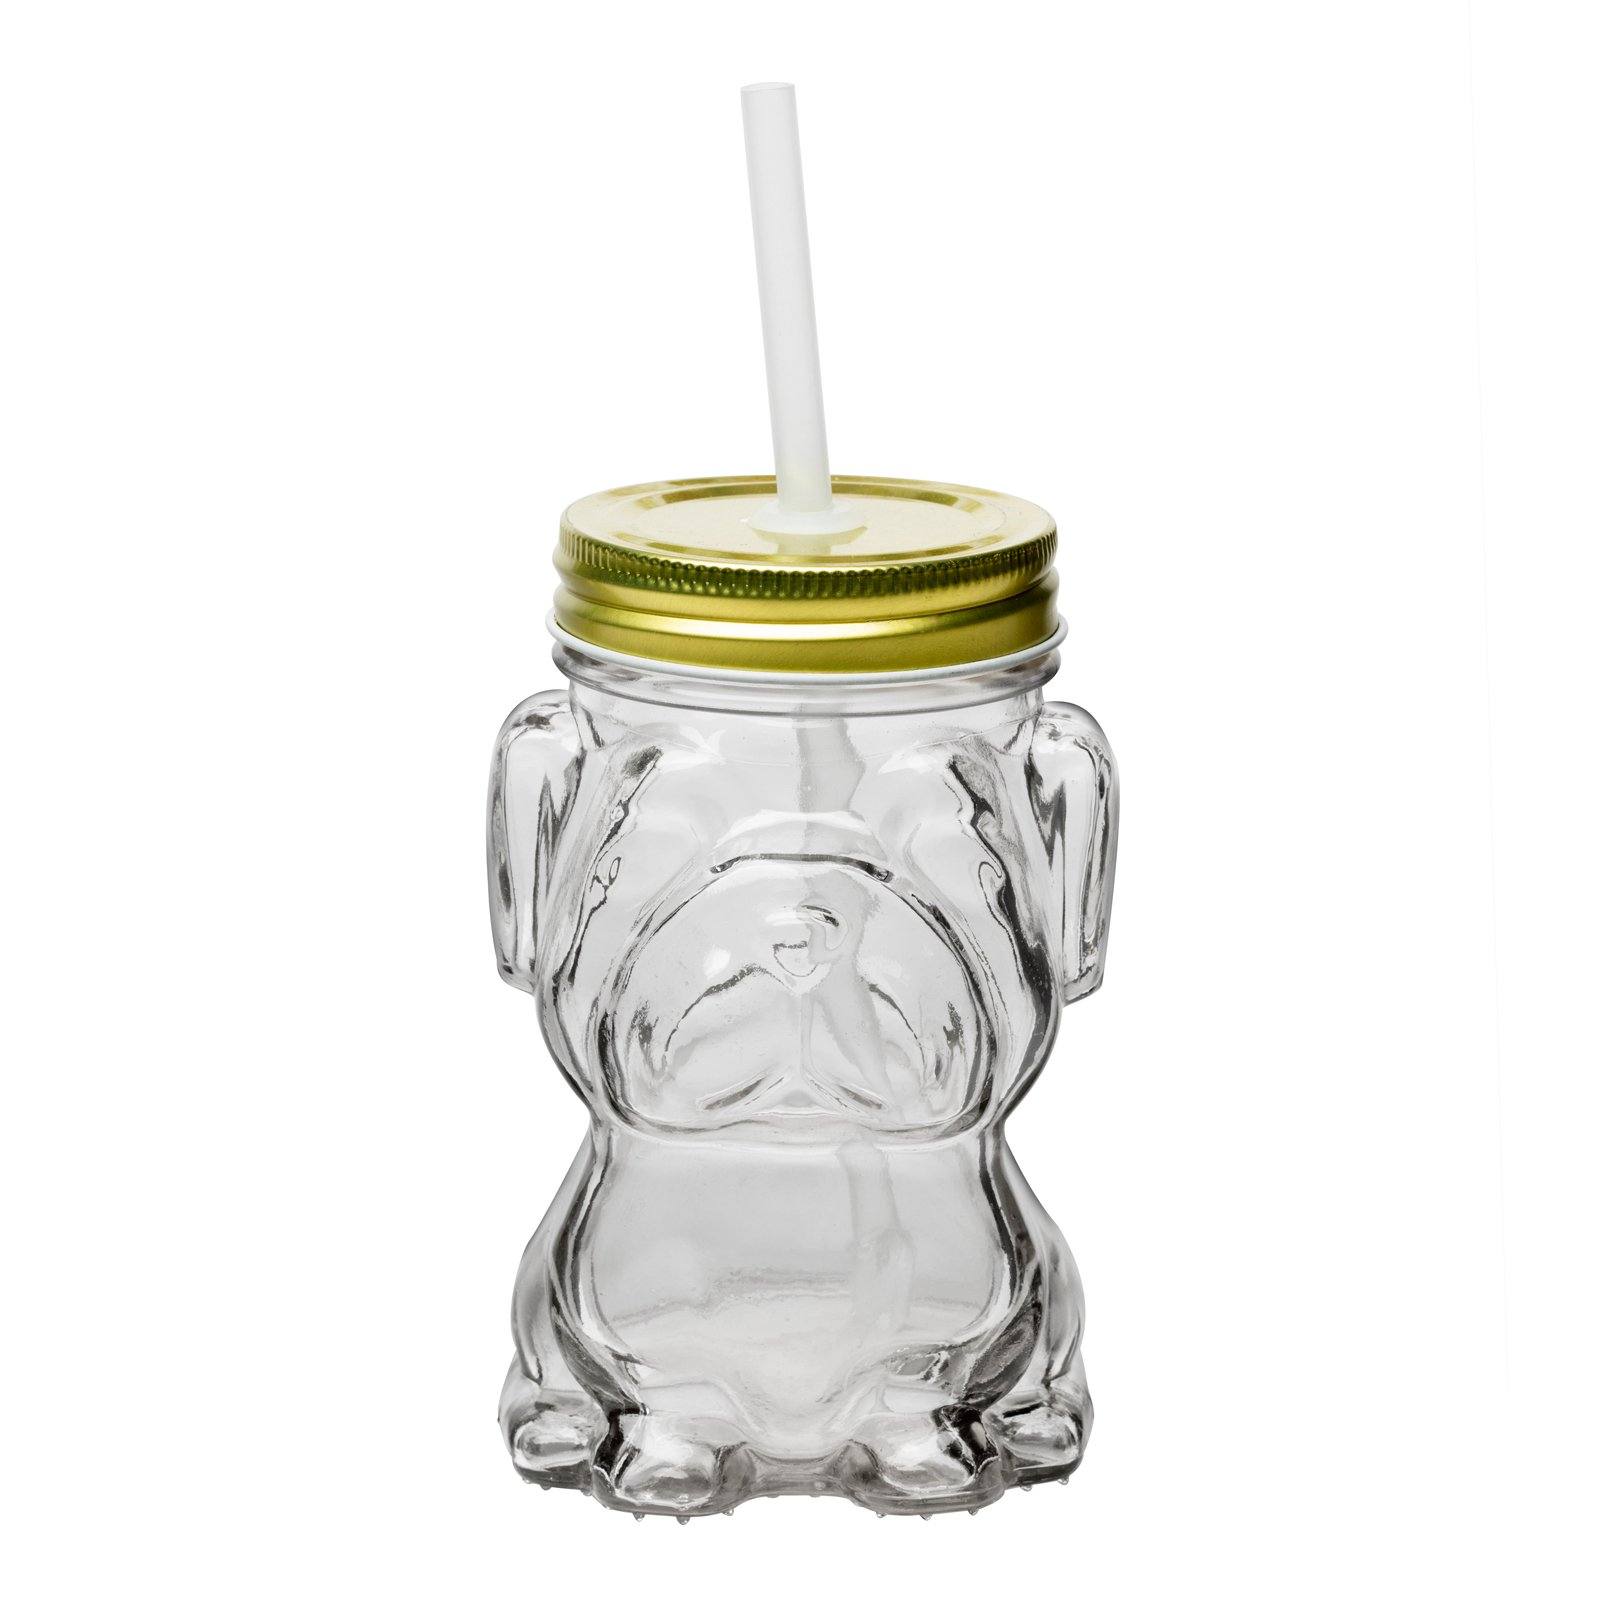 Amici Home, 7CM204GS4R, Mad Dog Glass Mason Jar, Gold Twist Top Lid, Raised Textured Glass, 14 Ounce Capacity, Set of 4